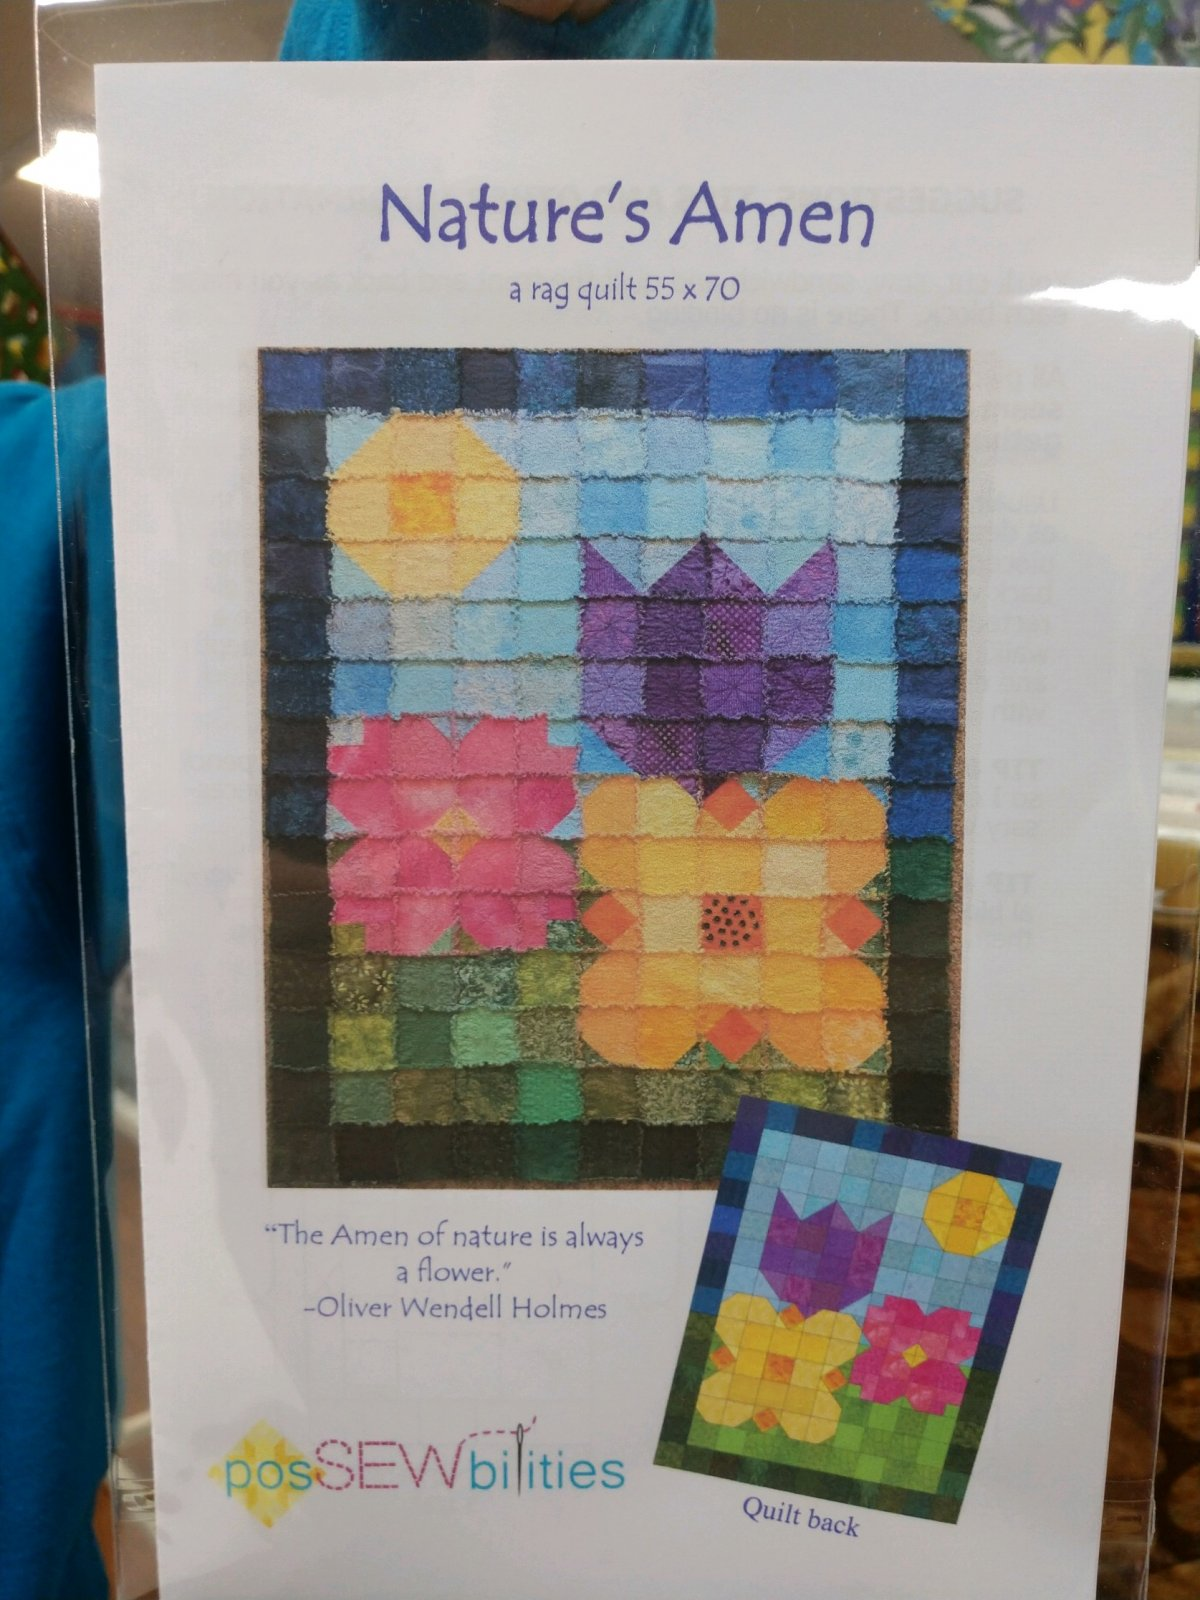 Exclusive Nature's Amen pattern